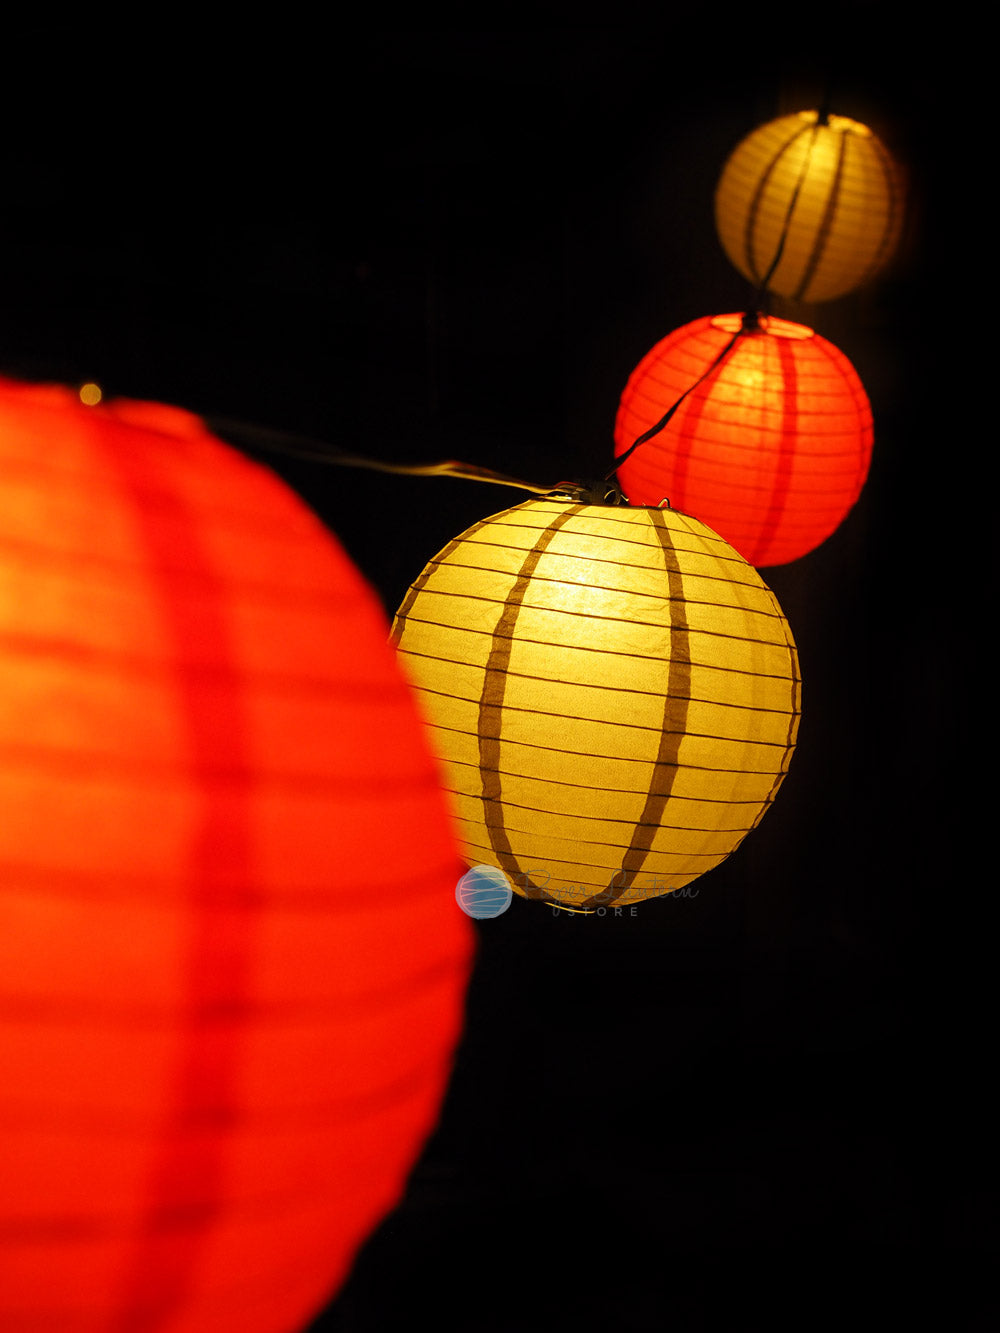 "16"" Chinese New Year Red and Gold Paper Lantern String Light COMBO Kit (31 FT, EXPANDABLE, Black Cord) - PaperLanternStore.com - Paper Lanterns, Decor, Party Lights & More"